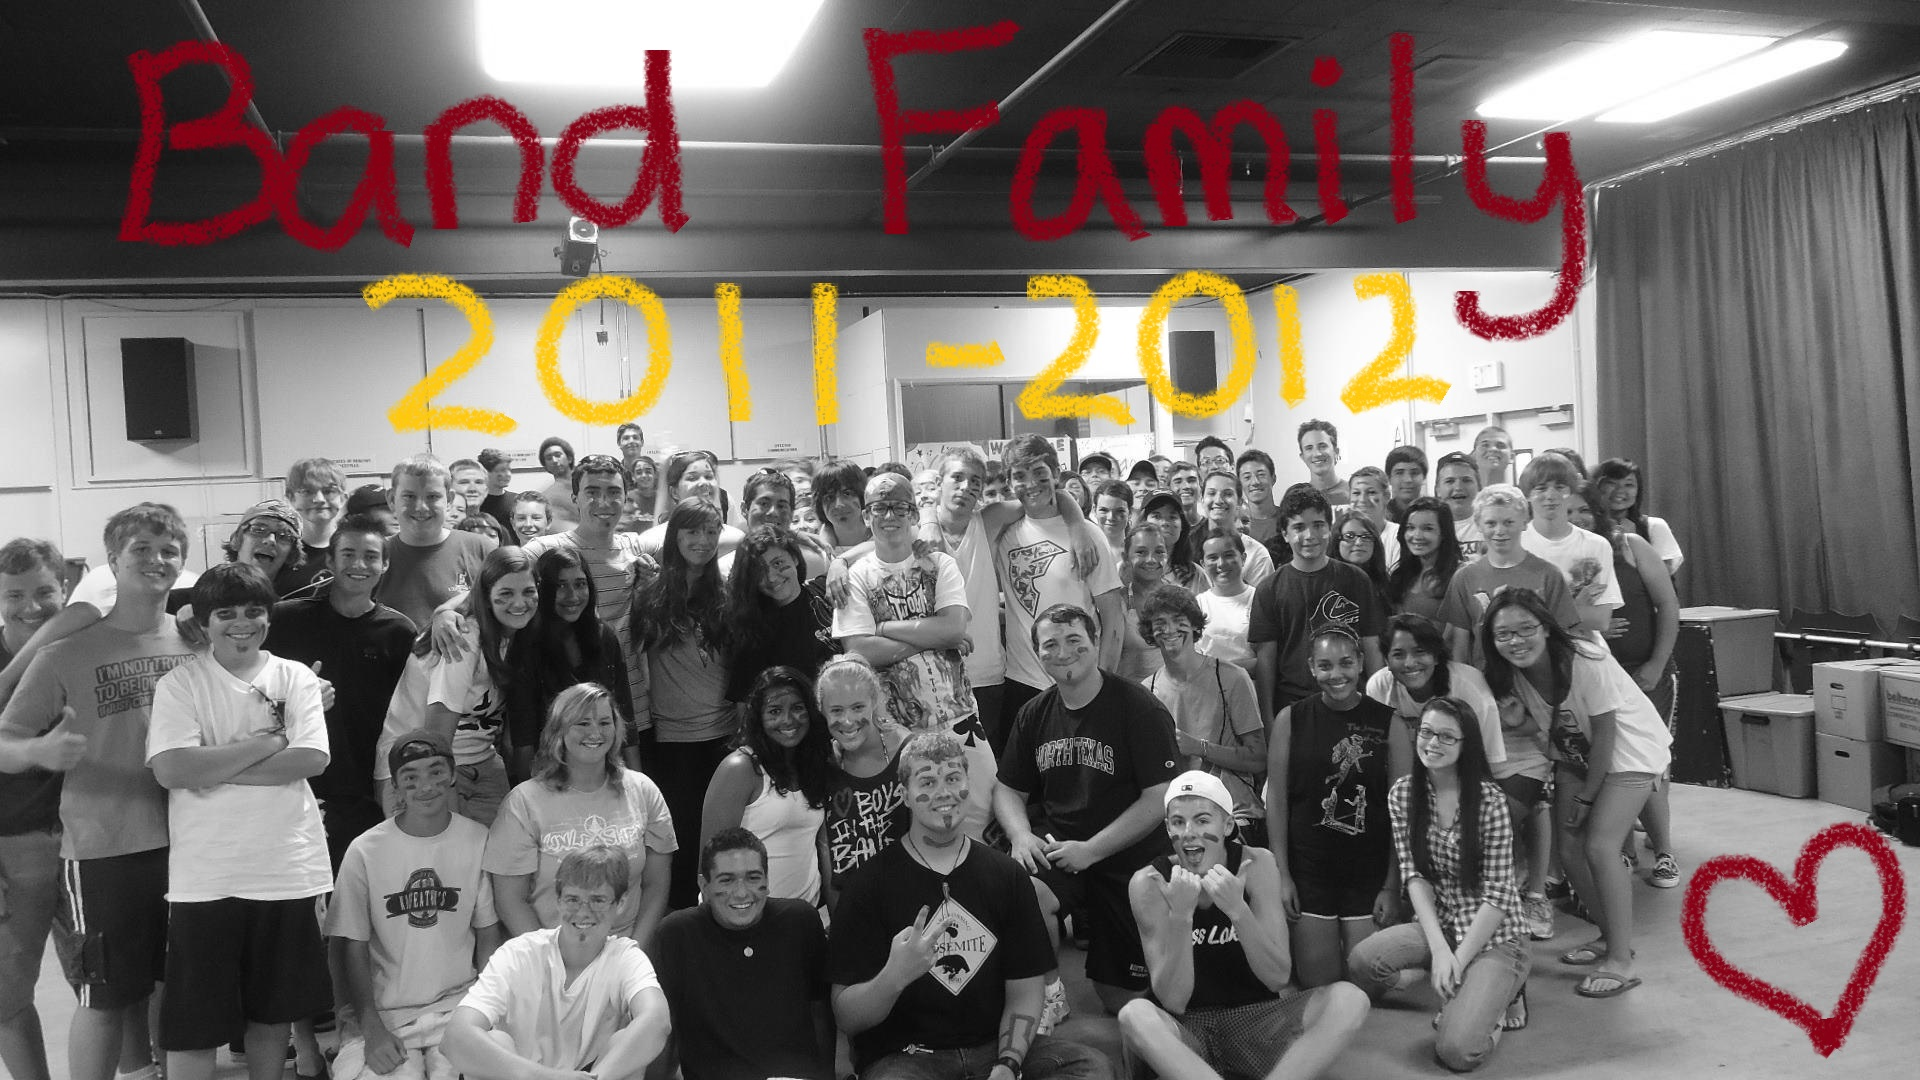 ehs-band-camp-2011-bw-edit